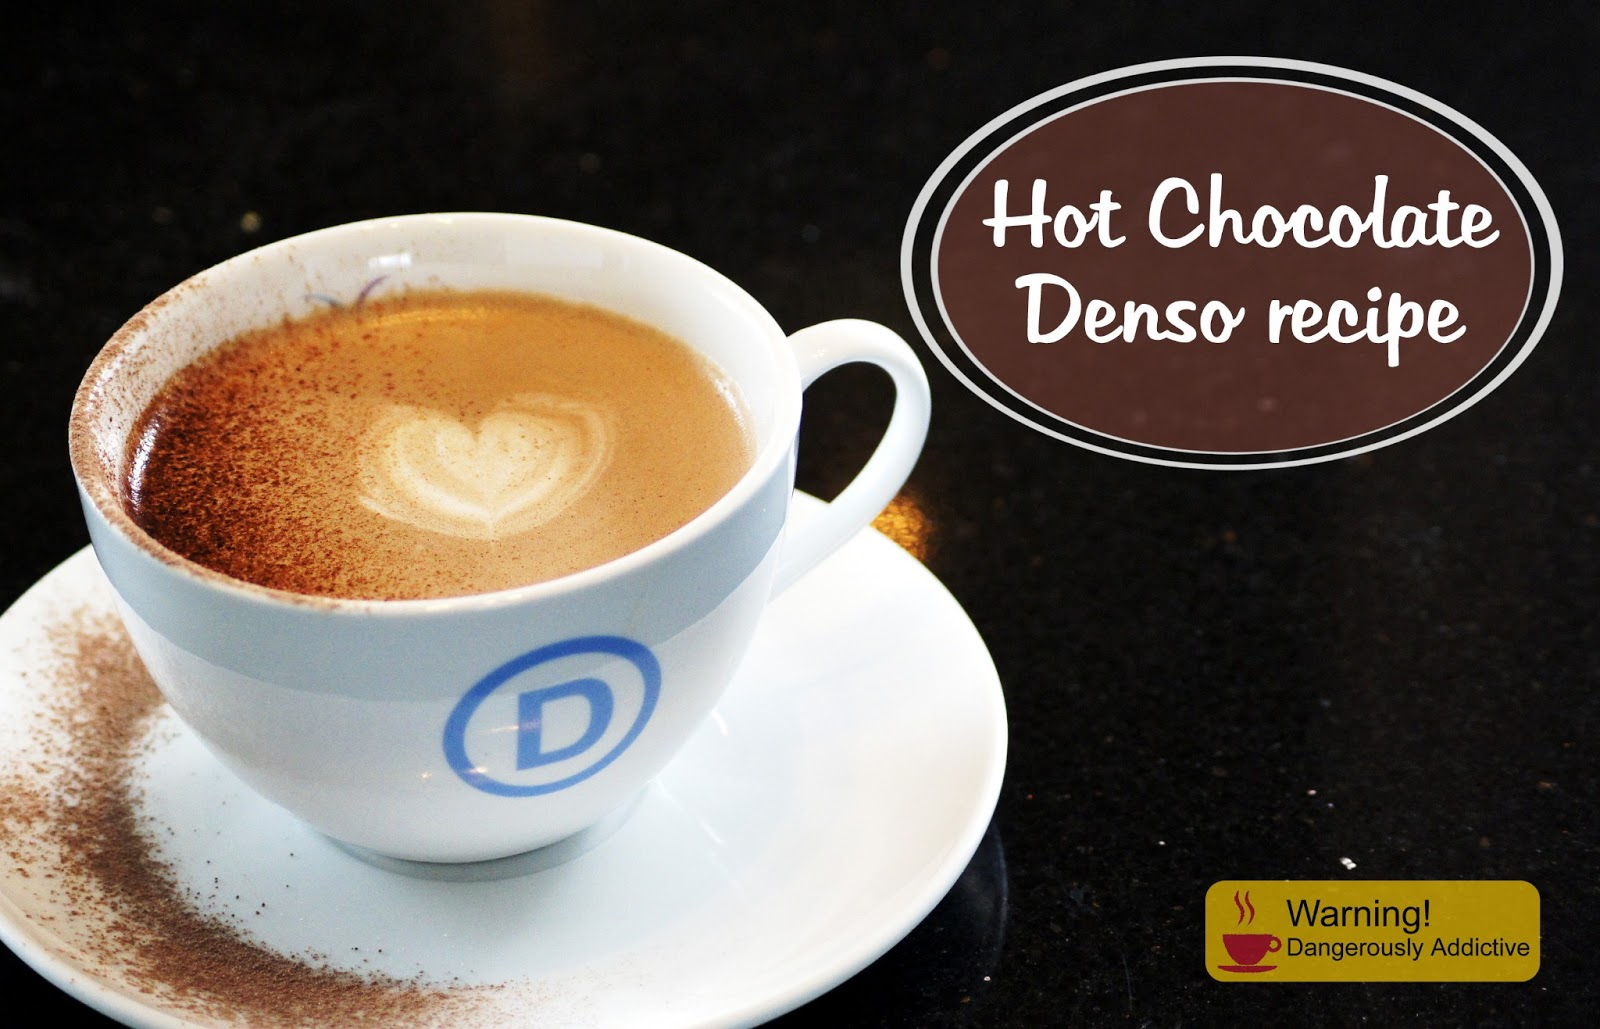 Denso, Hot chocolate, hot chocolate powder, thick hot chocolate